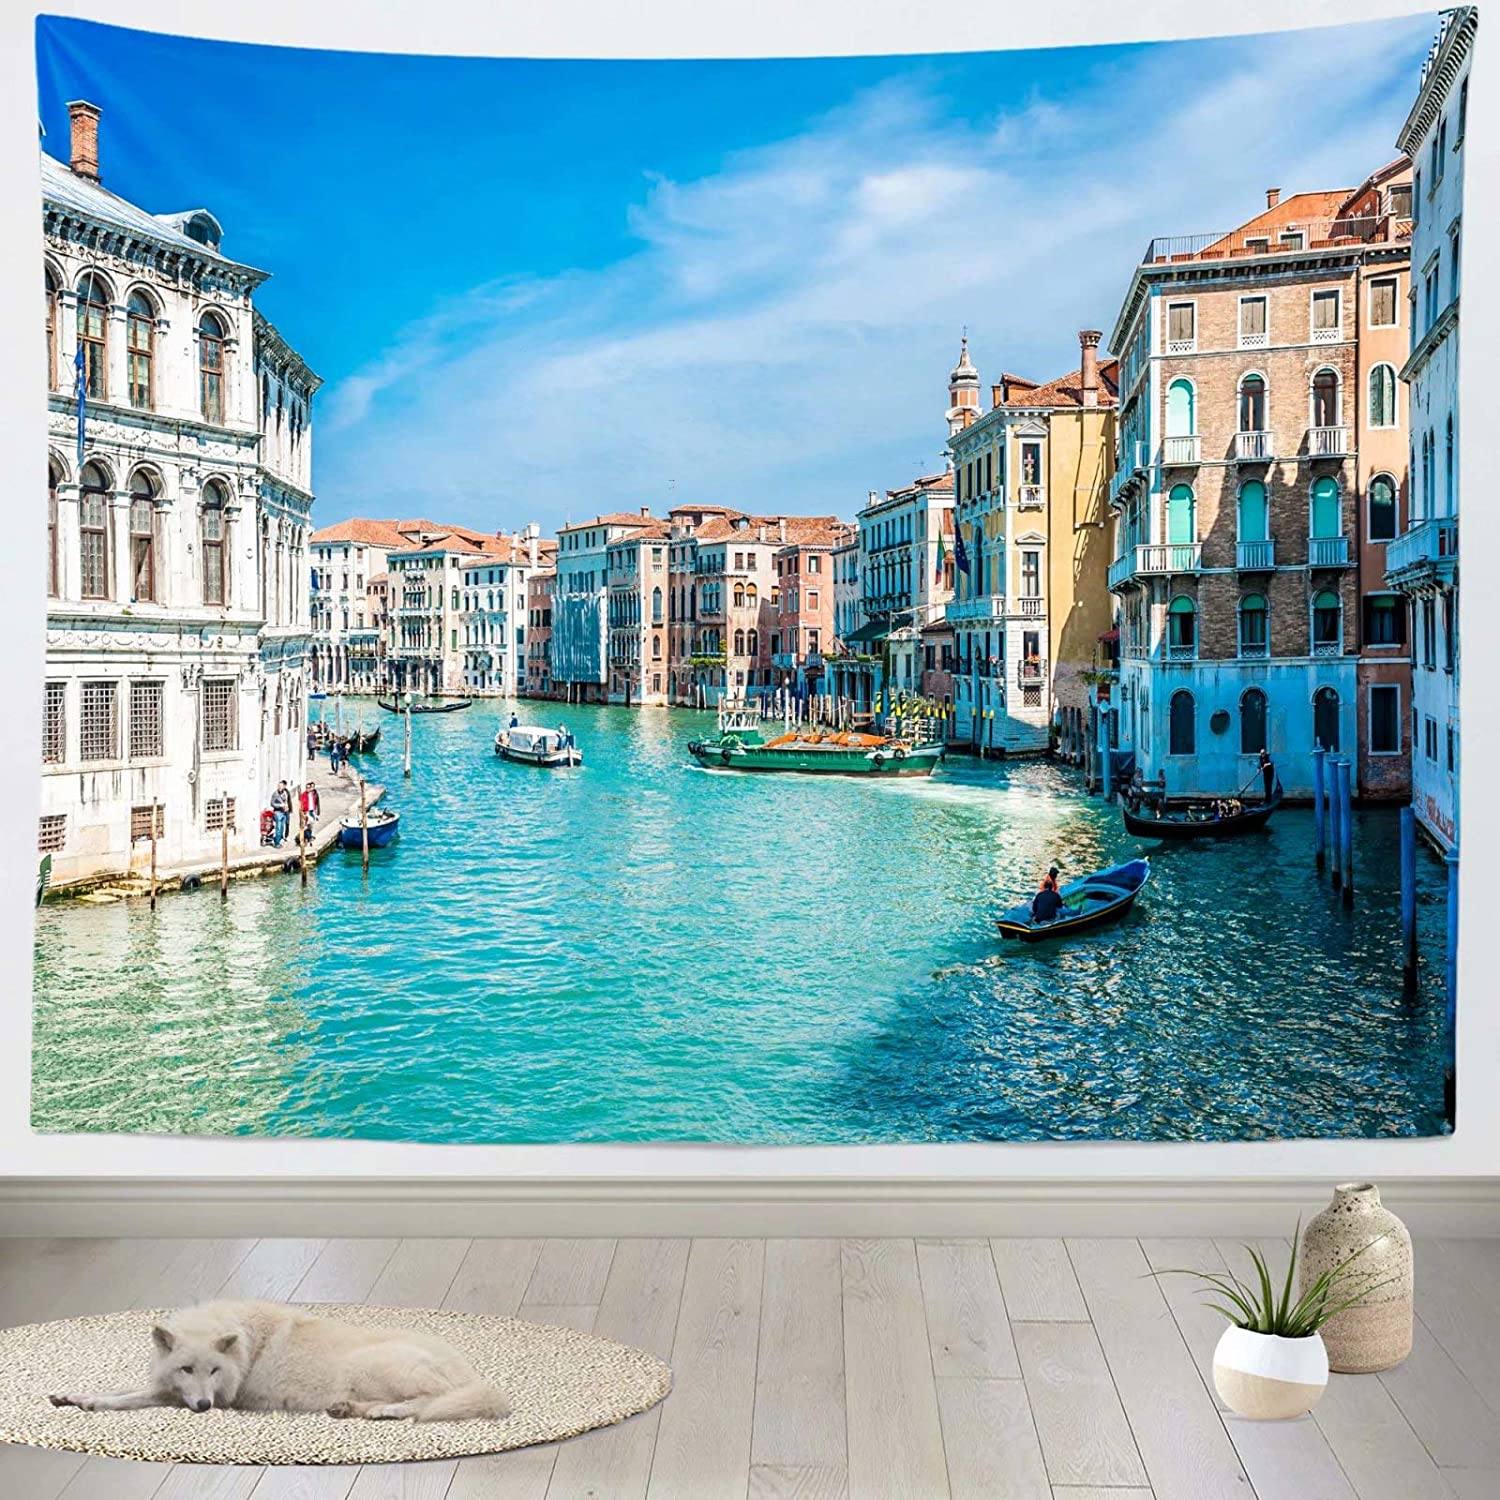 Amazon Com Loccor Venice Italy Tapestry Photo Backdrop Gondola Near Rialto Bridge On Grand Canal Street Venice Tapestry Wall Hanging For Bedroom Living Room College Dorm Photography Photo Booth Home Decorations Home